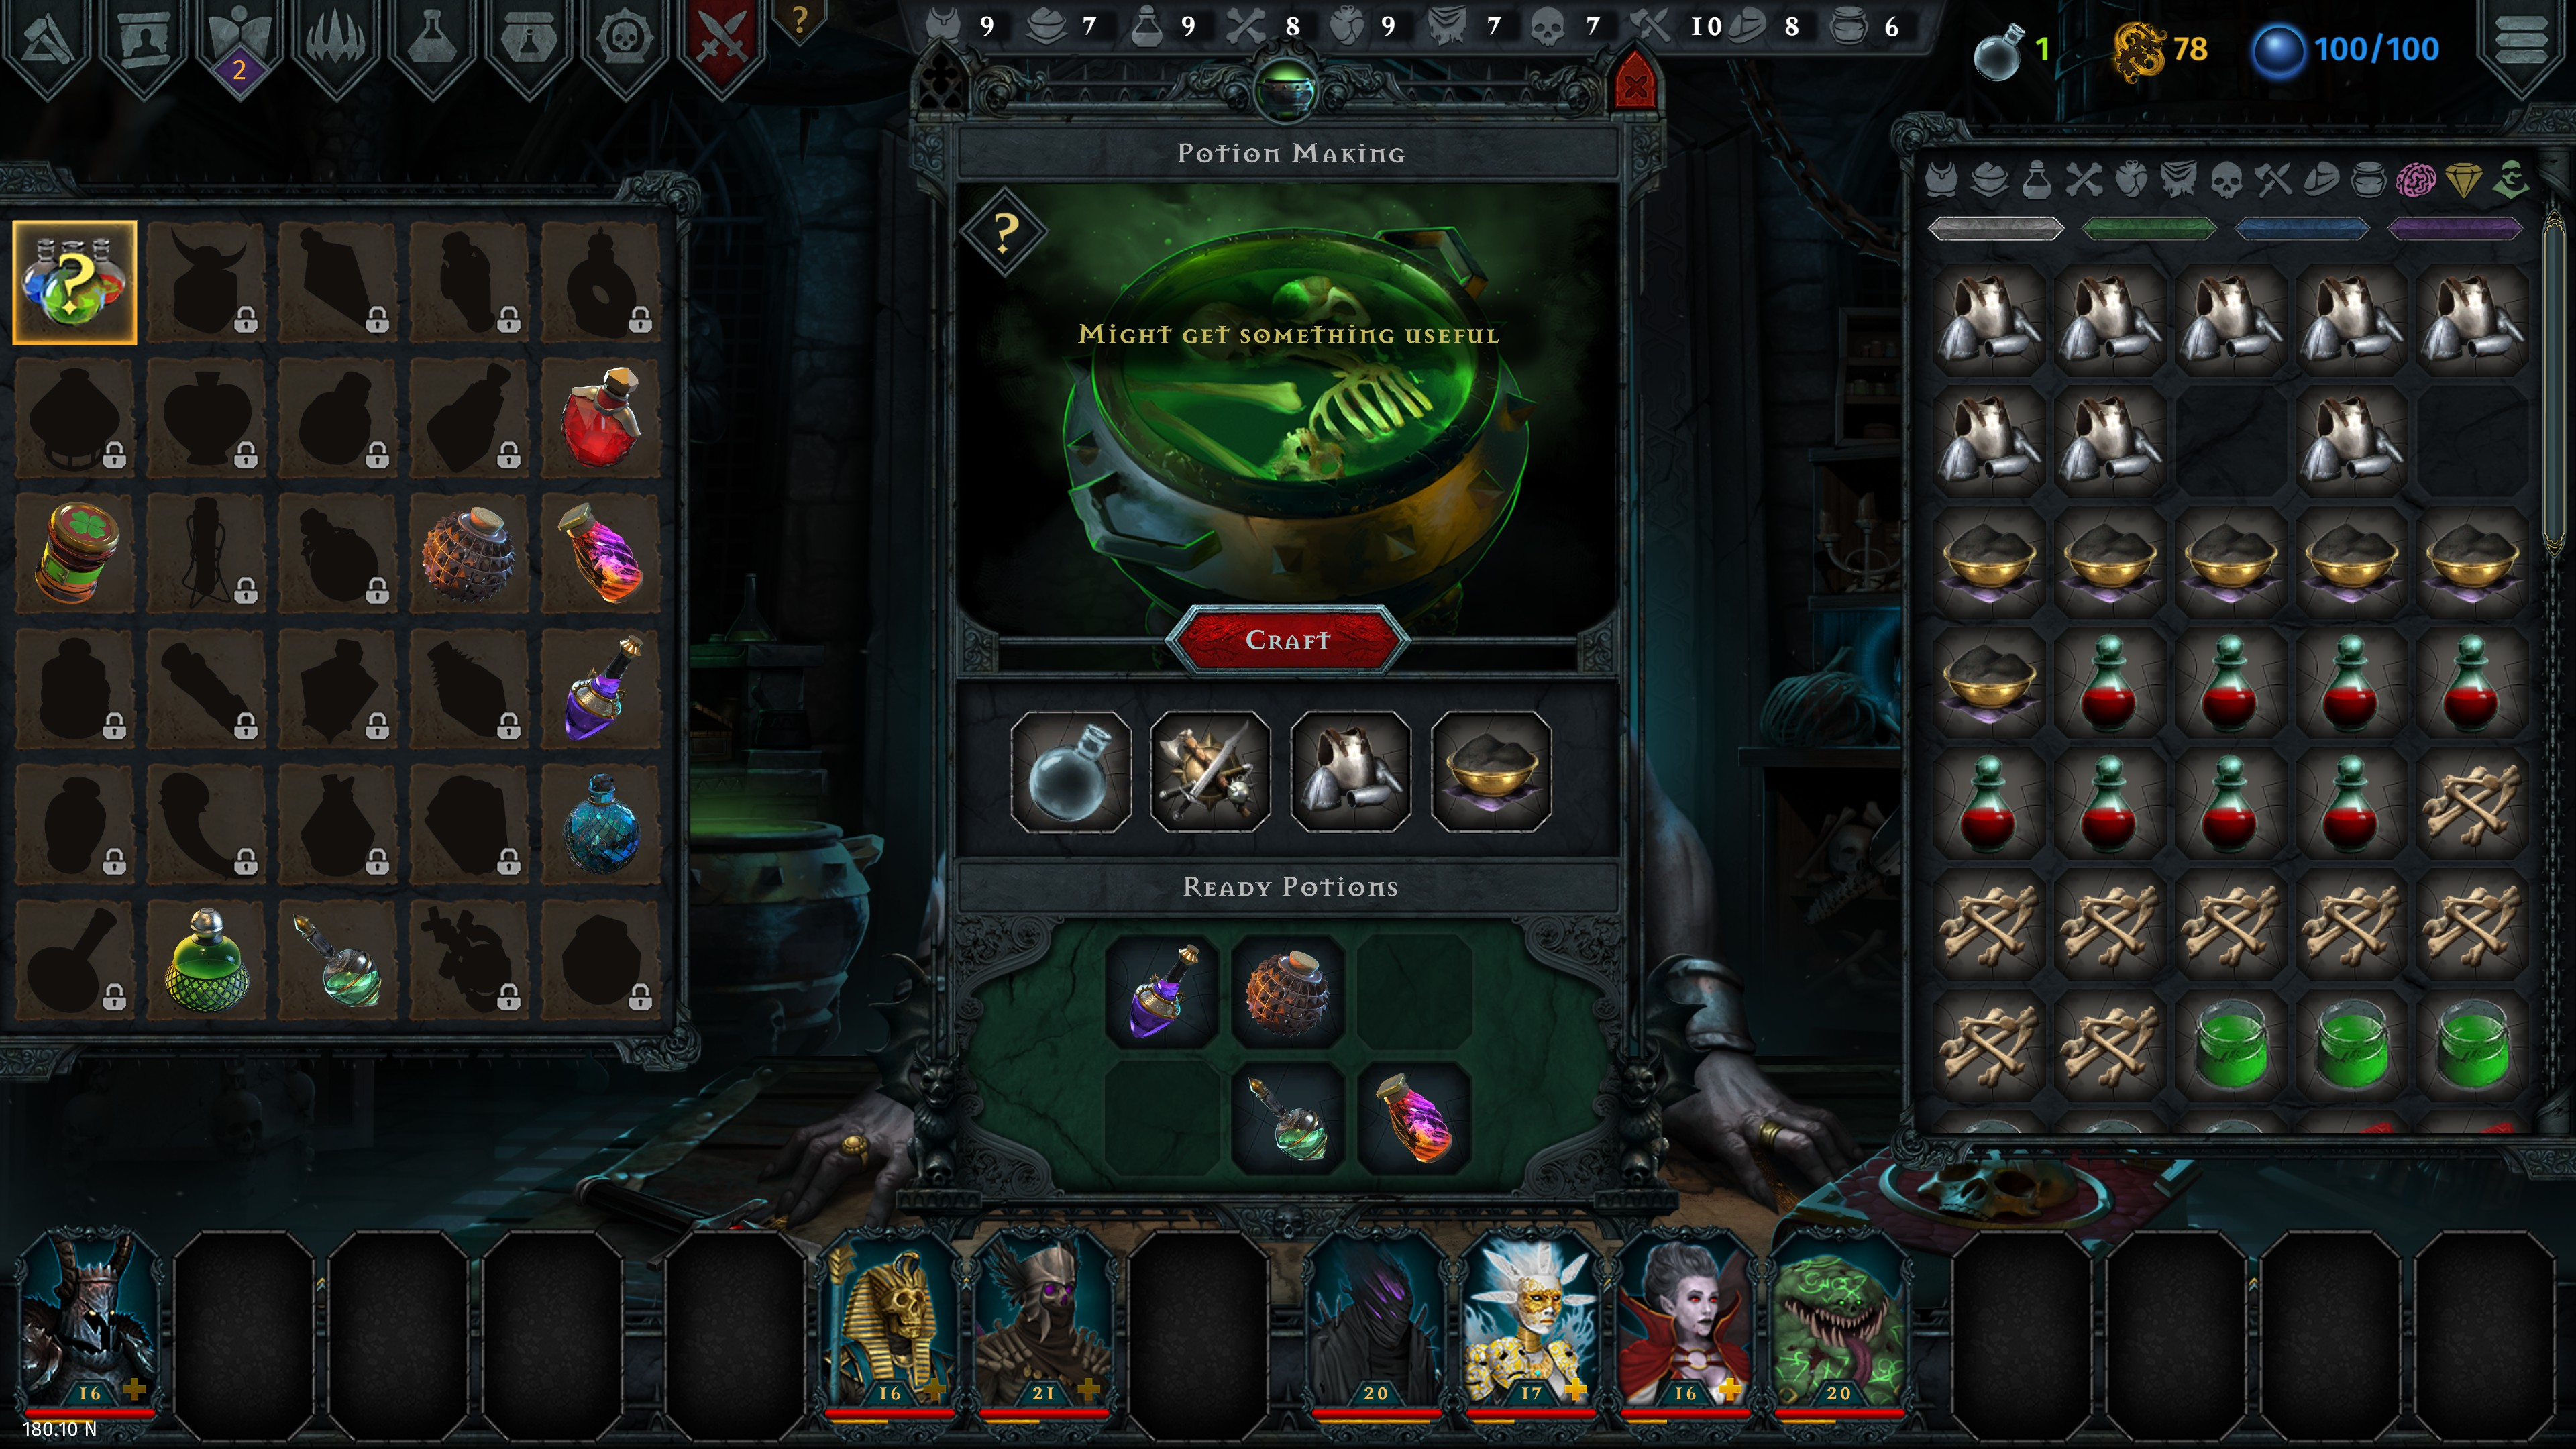 Iratus  Wrath of the Necromancer DLC. Placing three basic minion parts into potion experimentation. The interface suggests it 'might create something useful'.